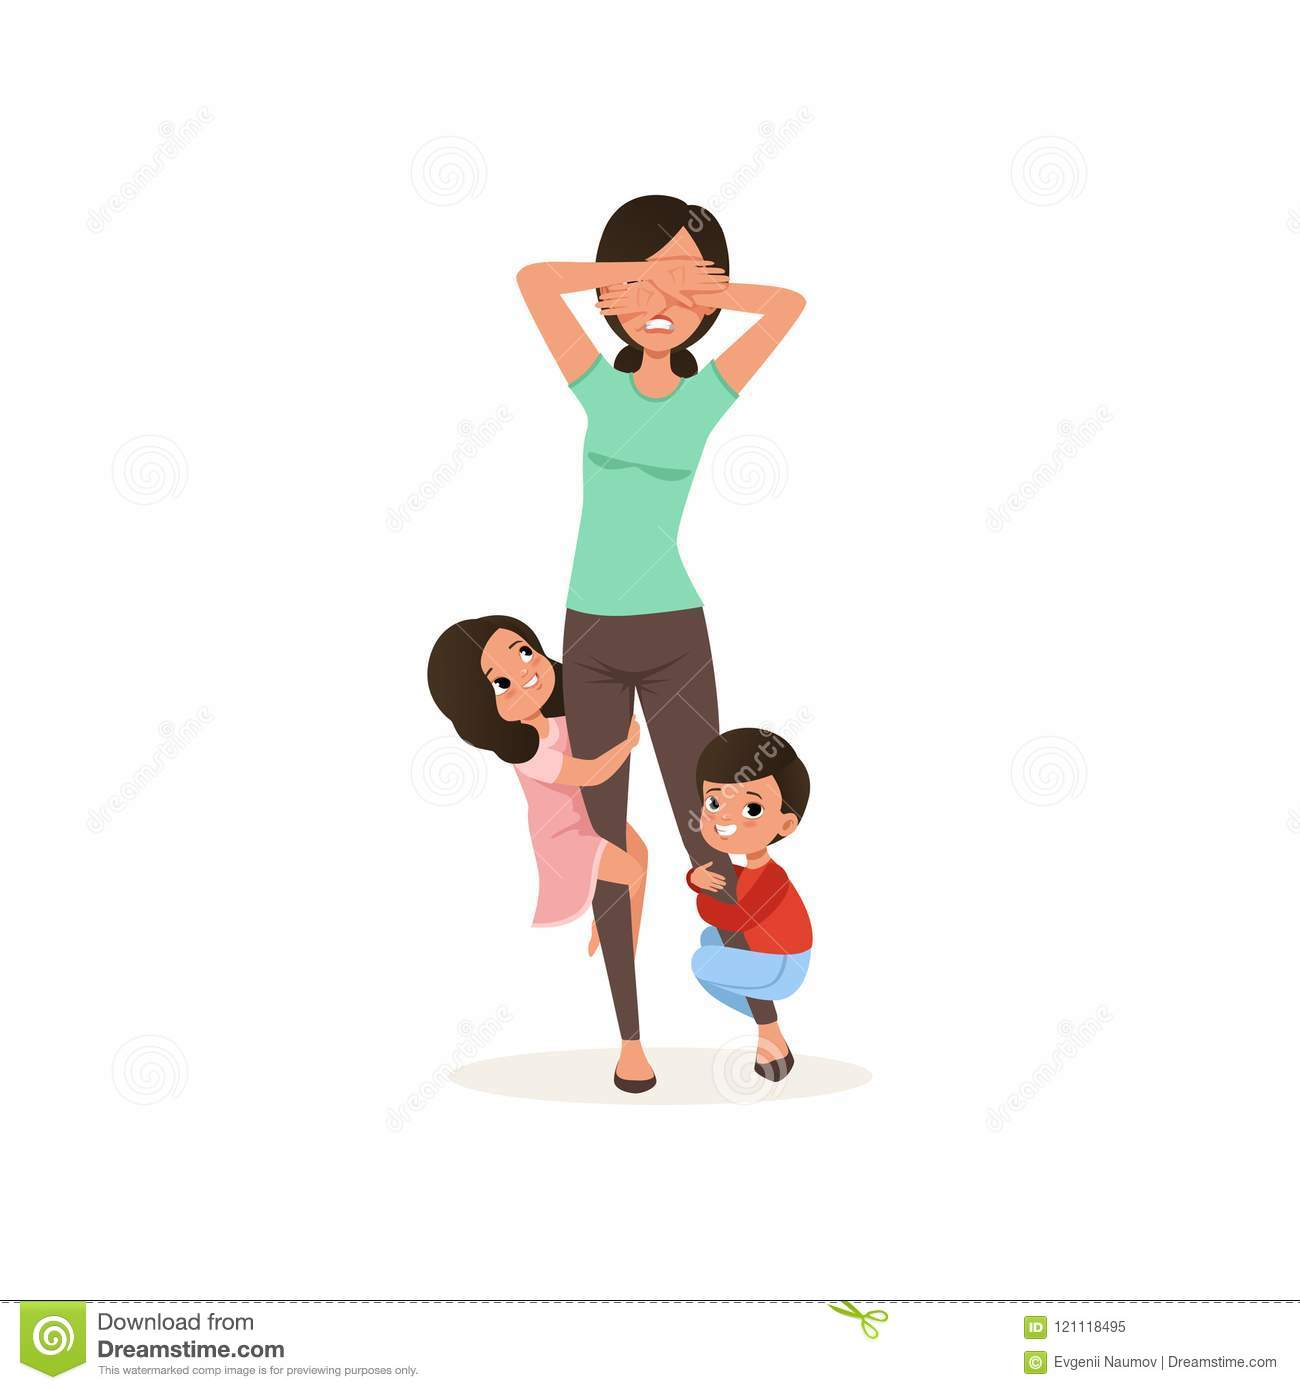 Smiling kids want to play with their tired mother, parenting stress concept, relationship between children and parents